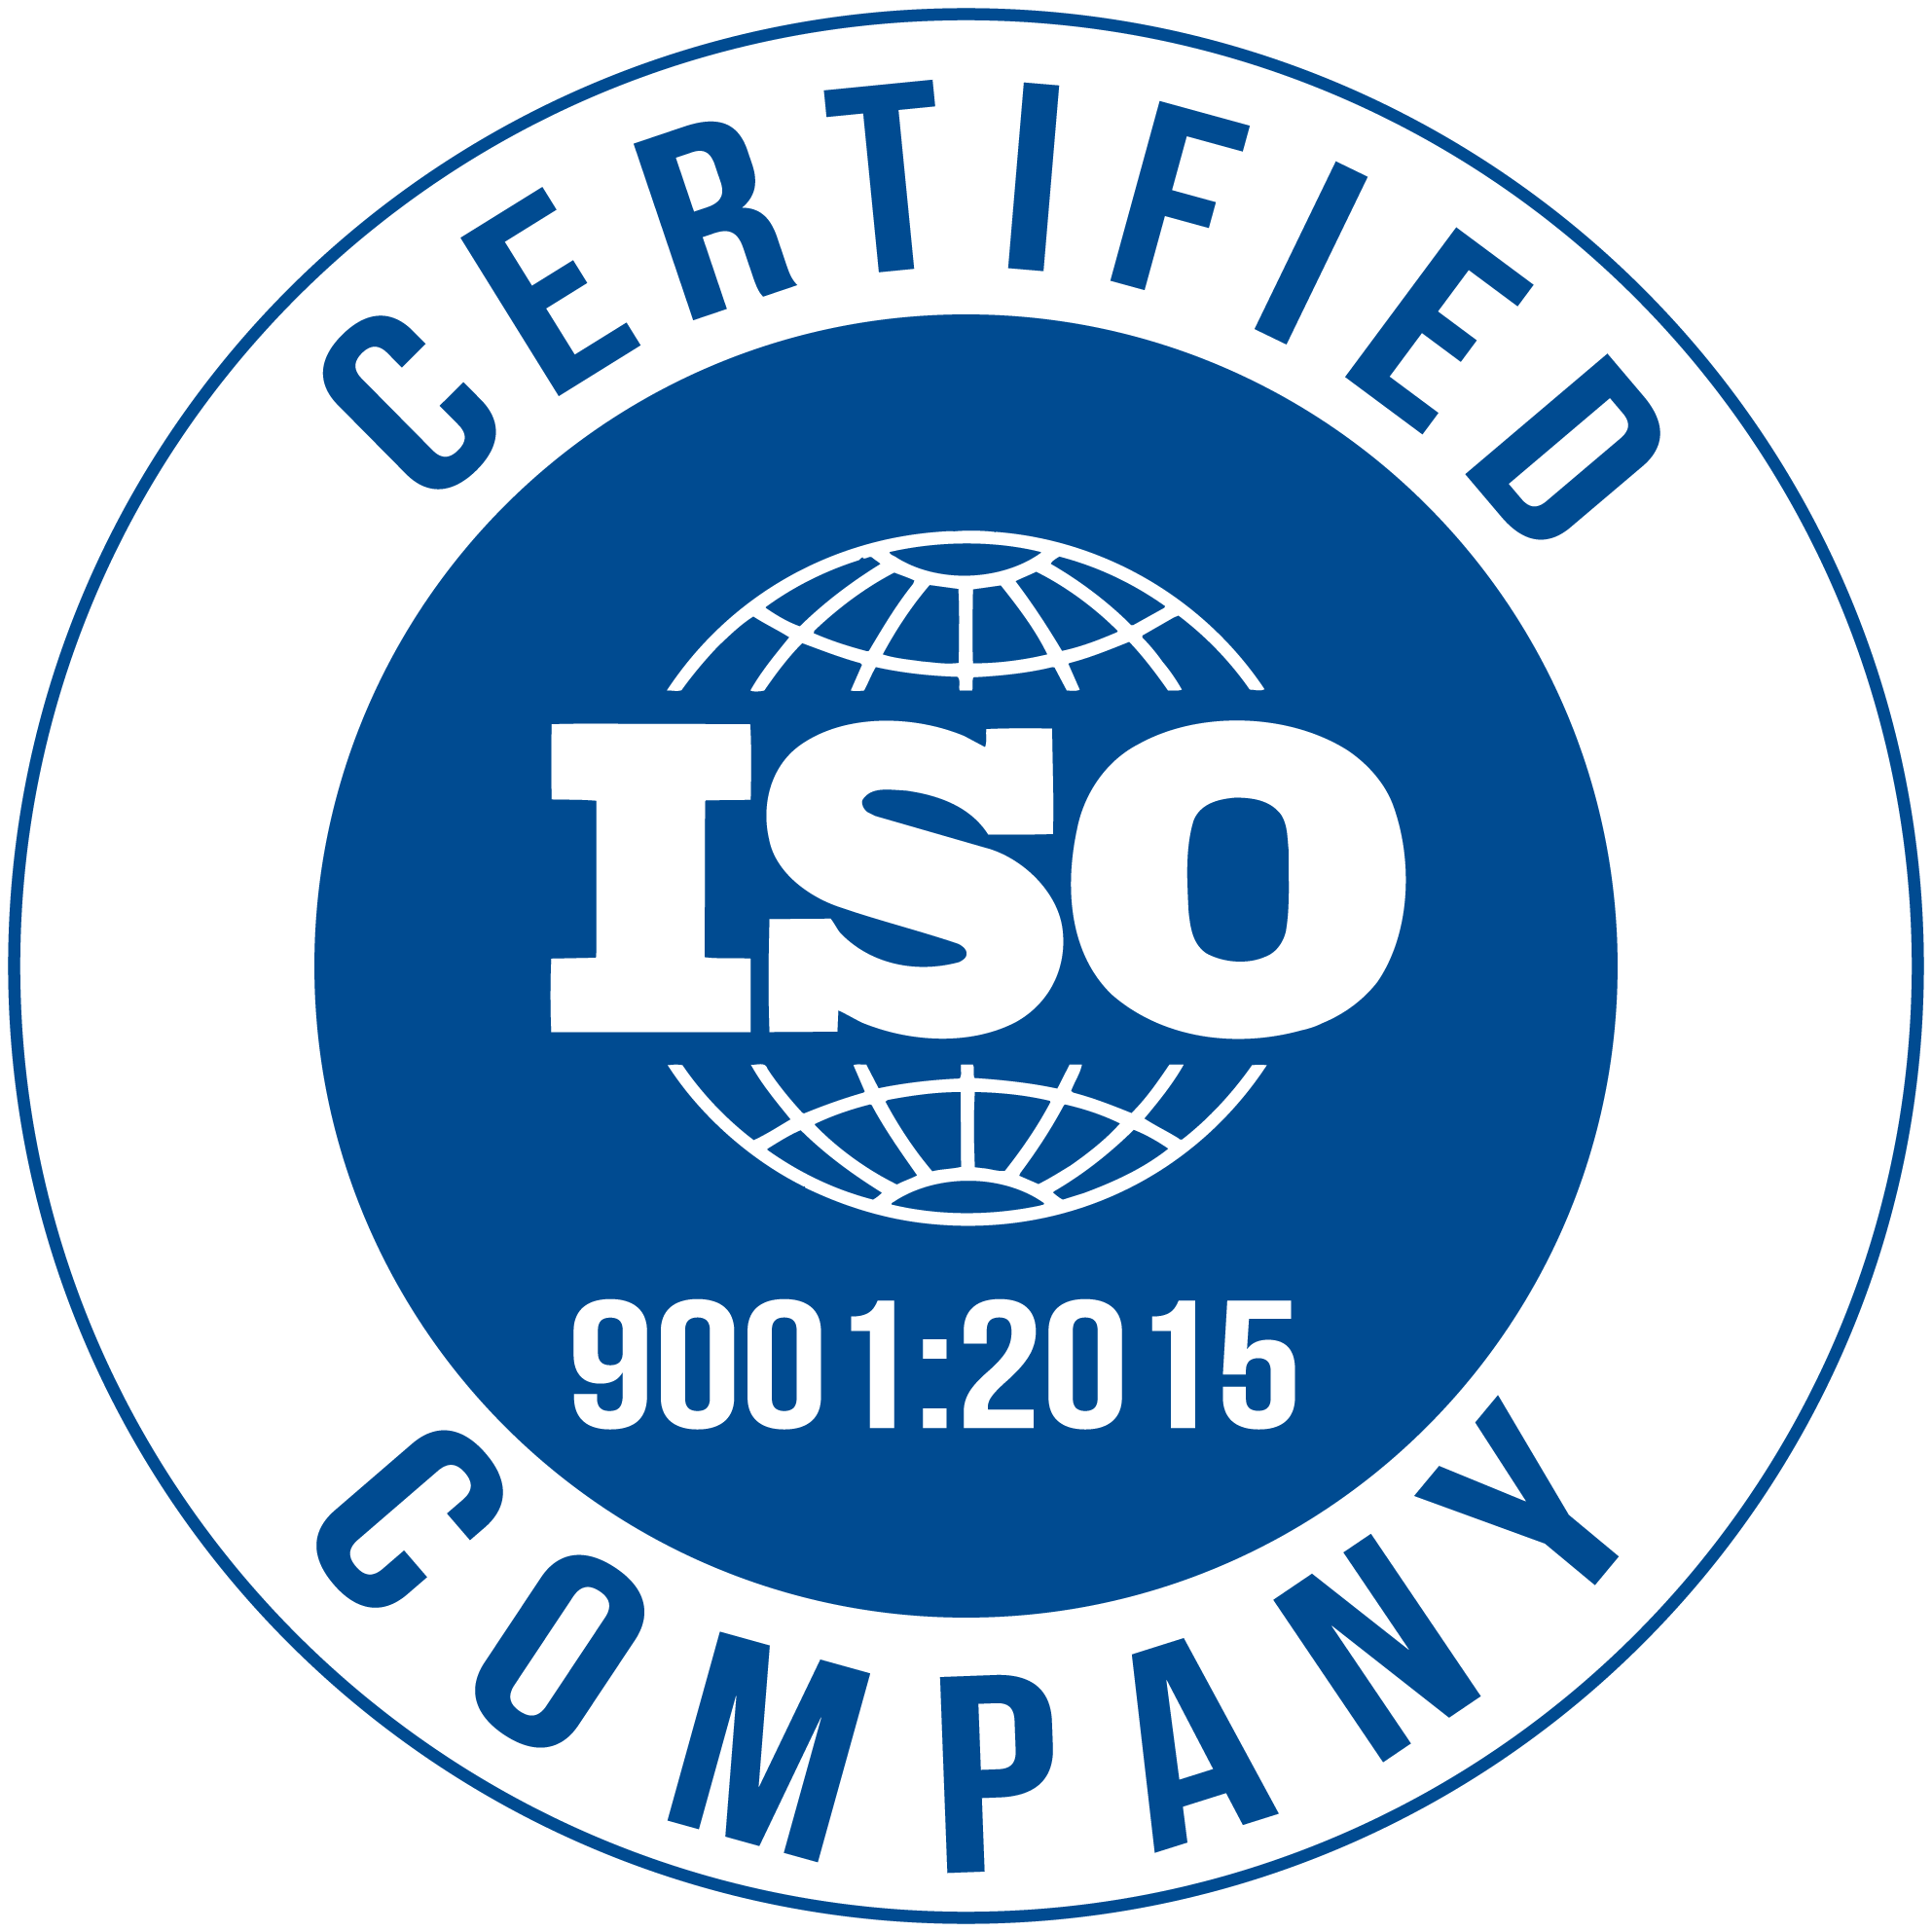 We are an ISO 9001:2015 certified company.